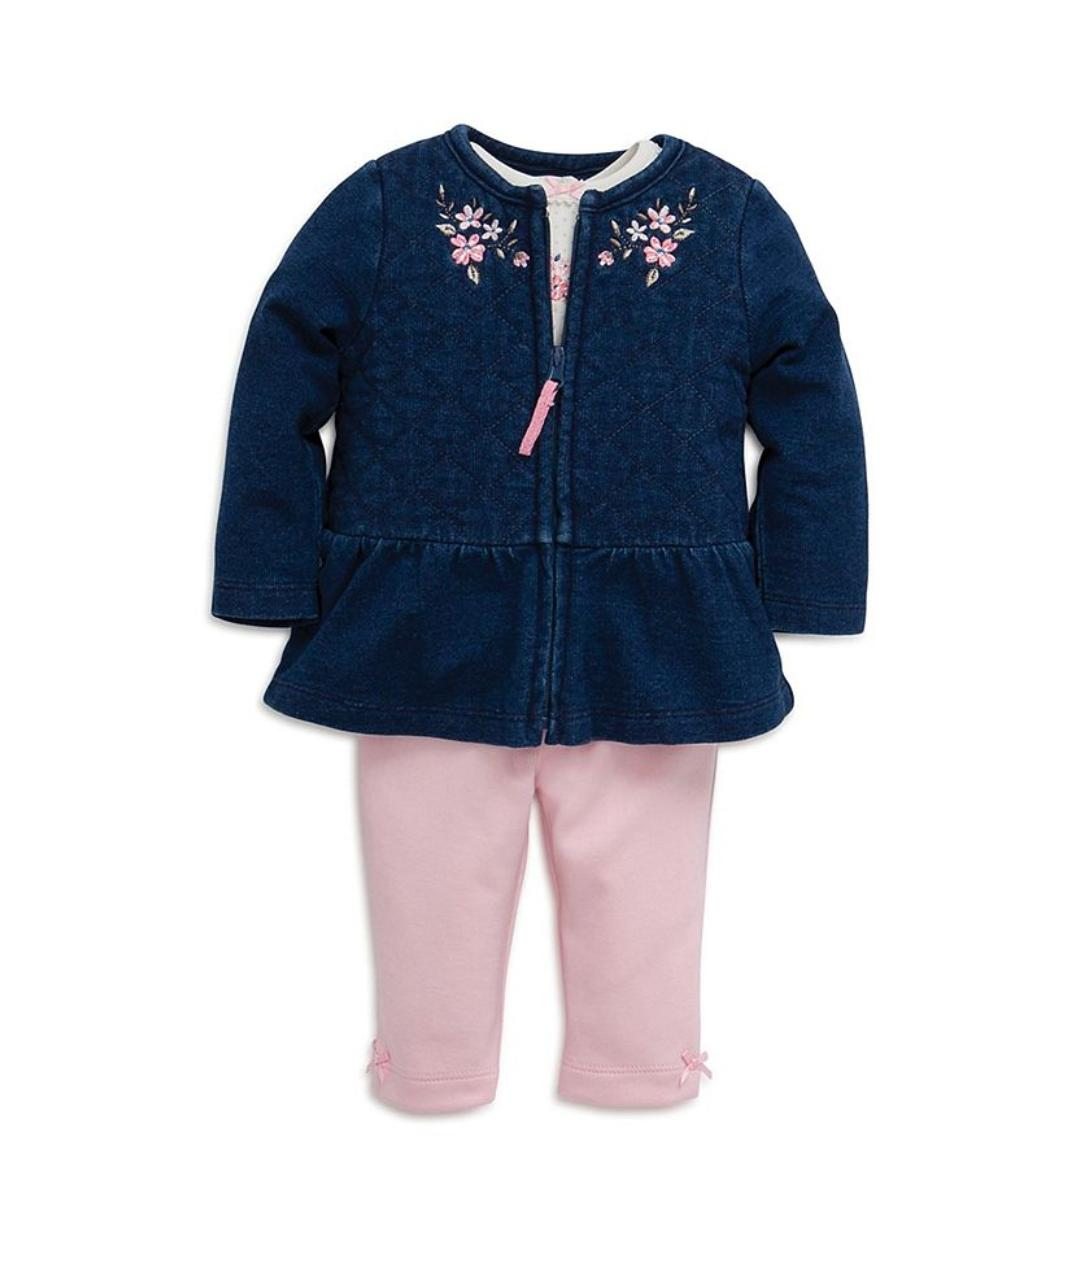 Little 3-Piece Set Jacket, 12M